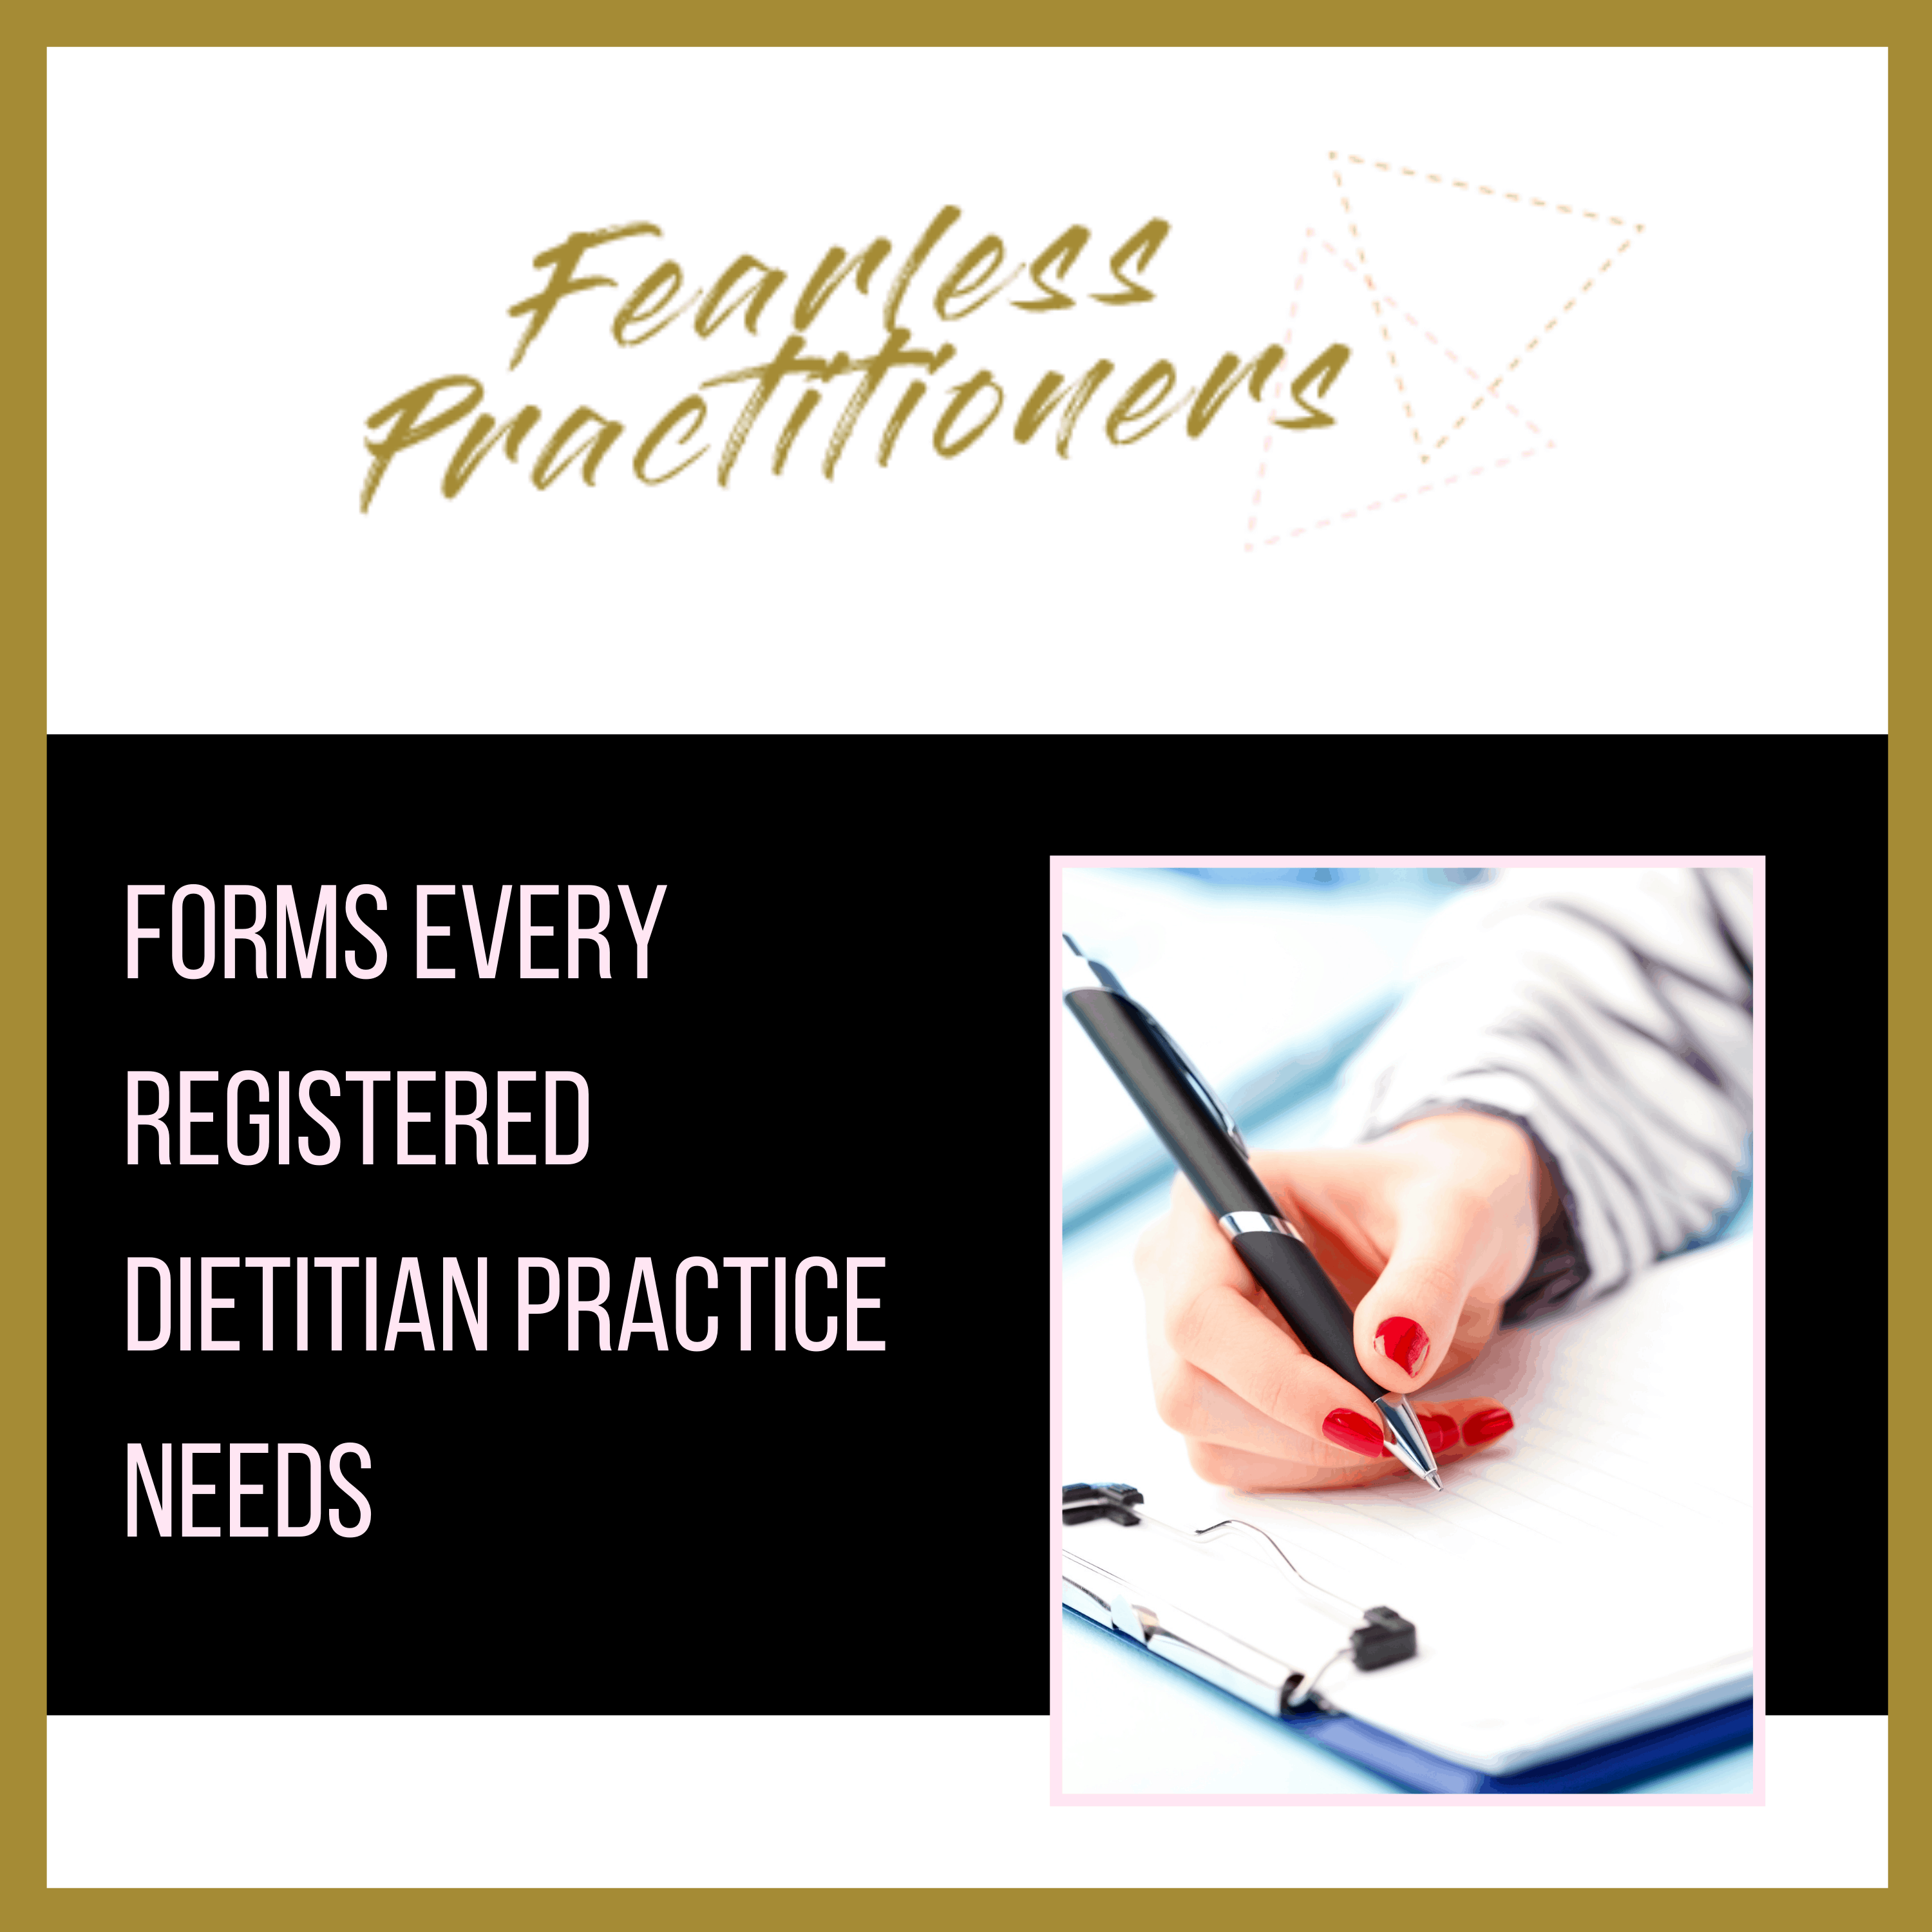 forms all registered dietitians need for their practice